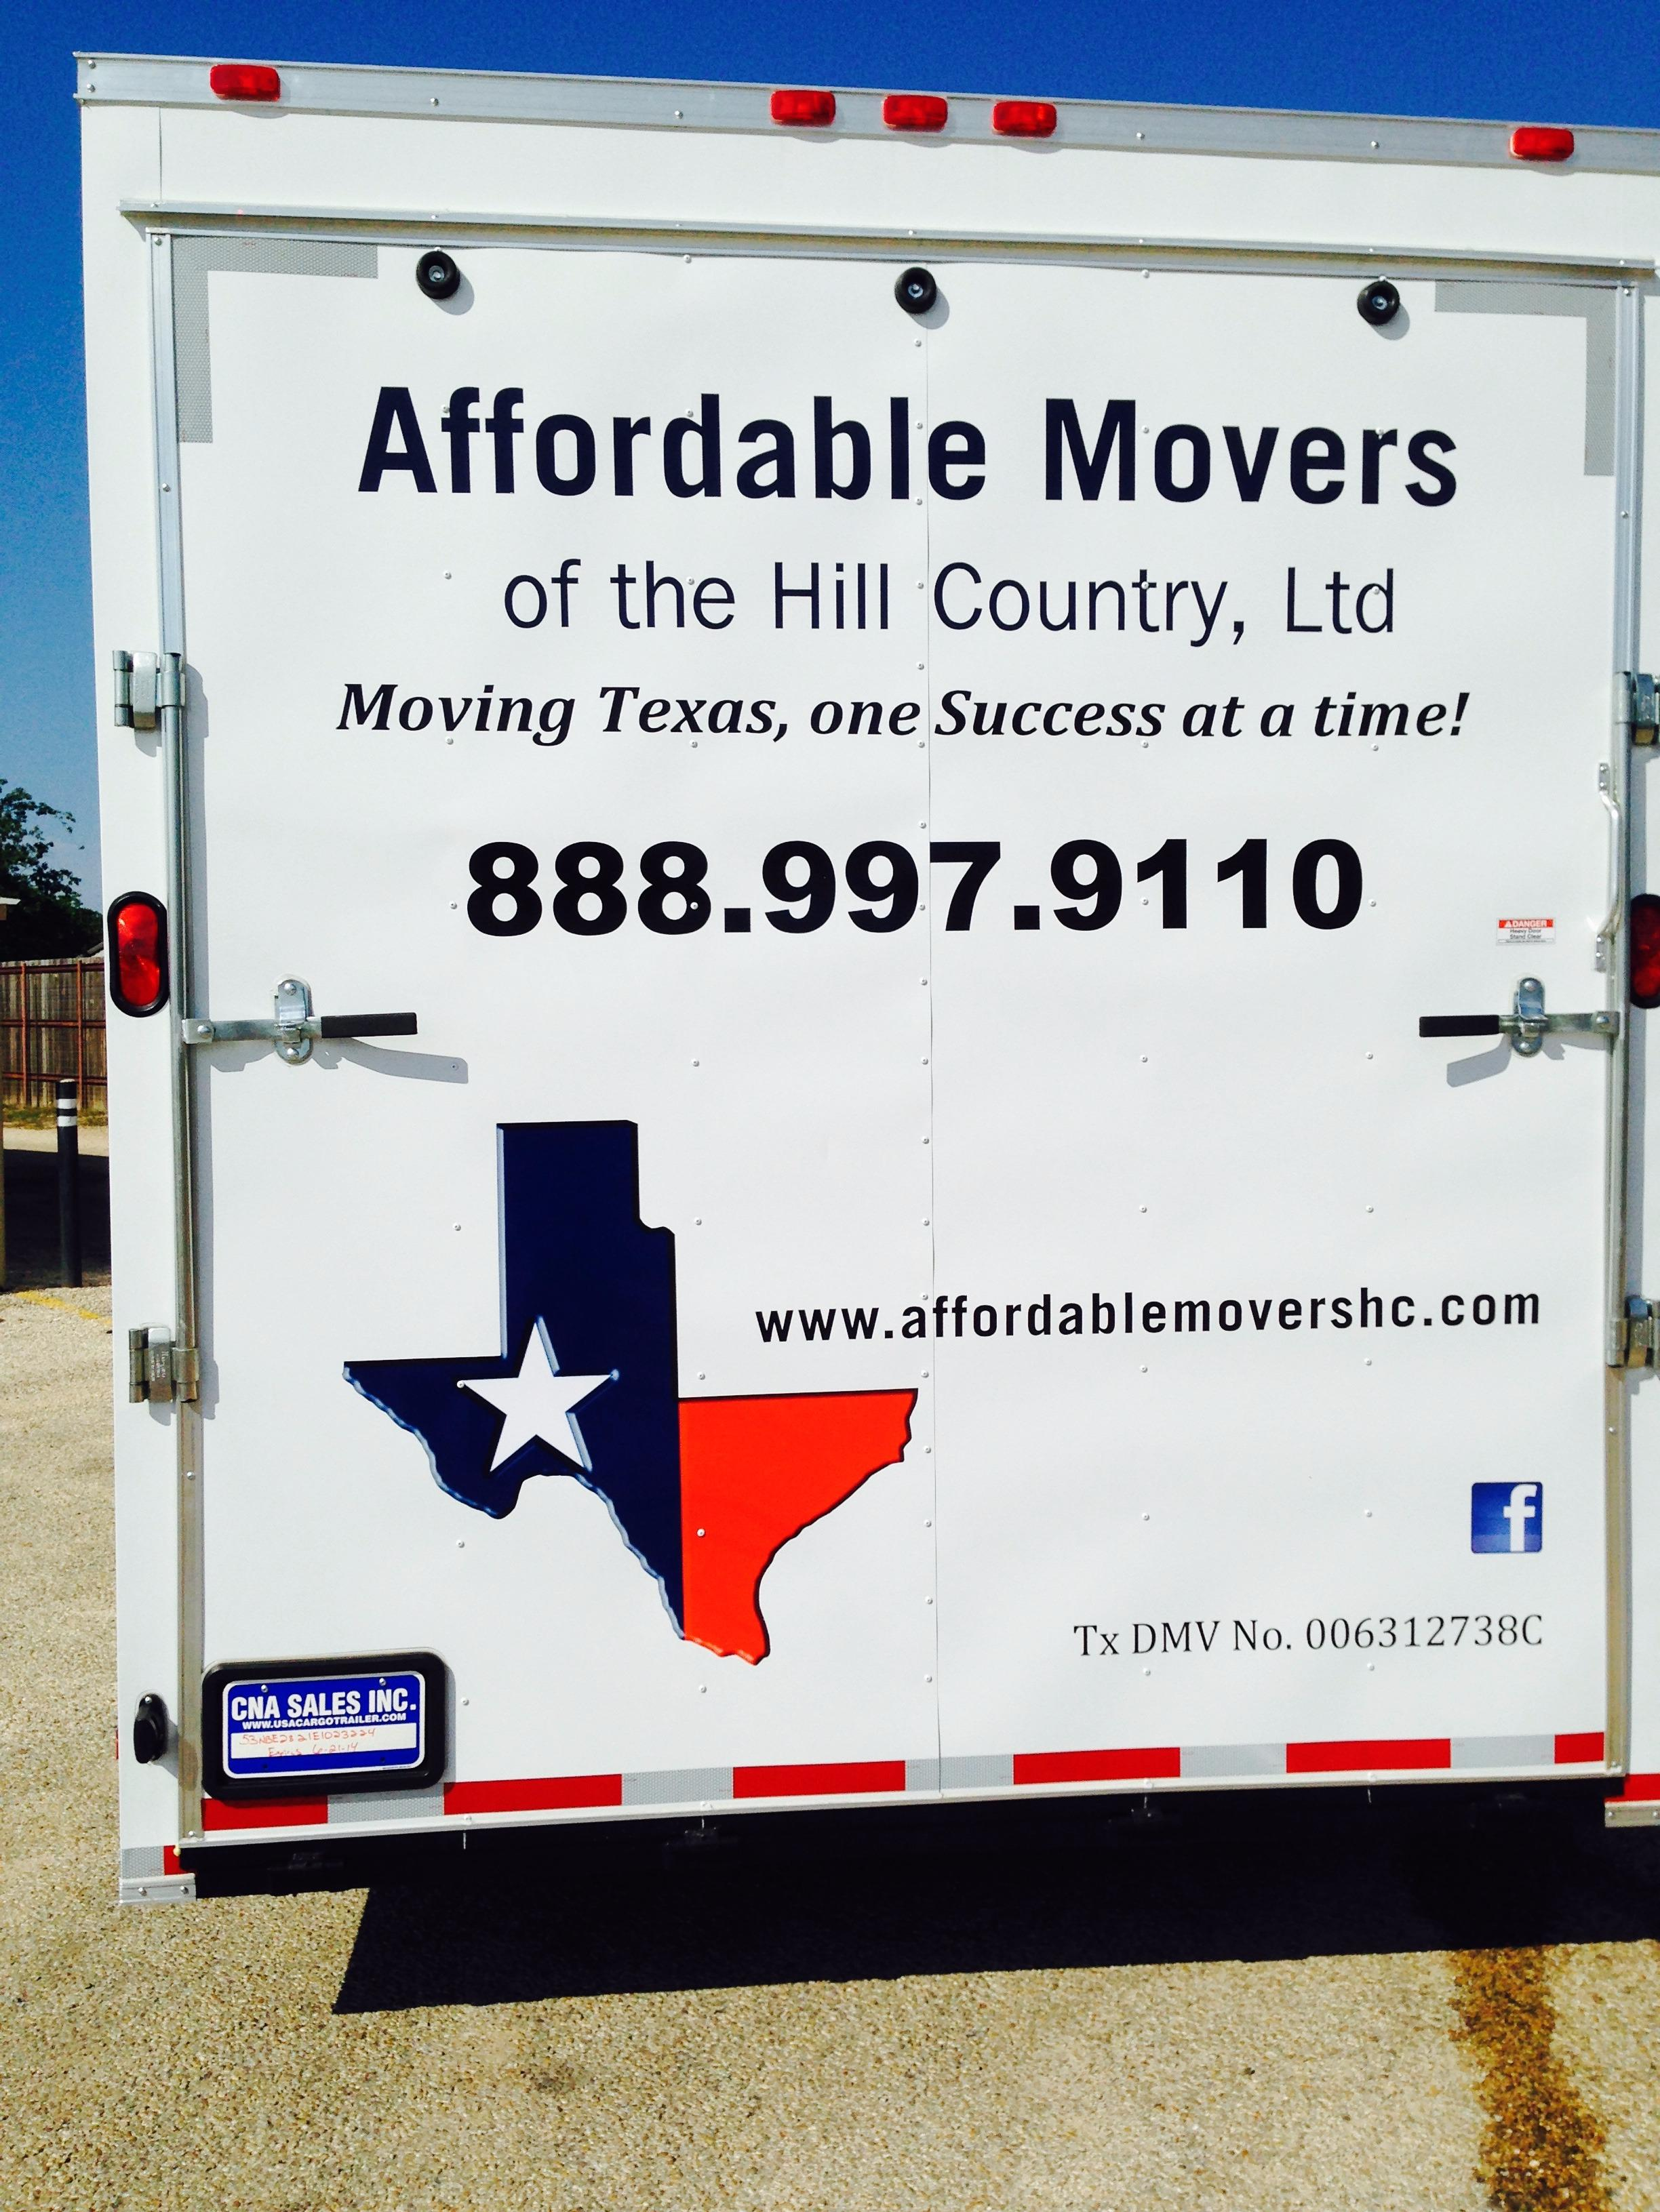 Affordable Movers of the Hill Country, Ltd image 1